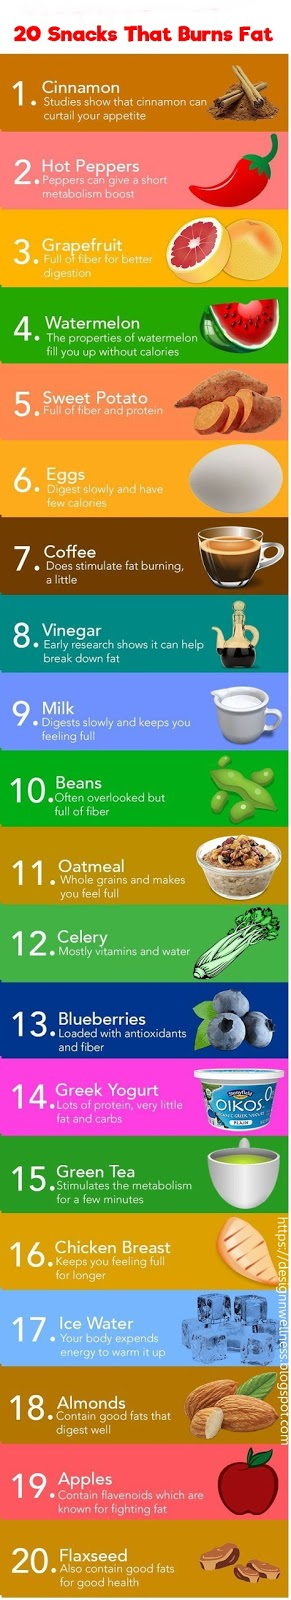 20 Snacks That Burns Fat